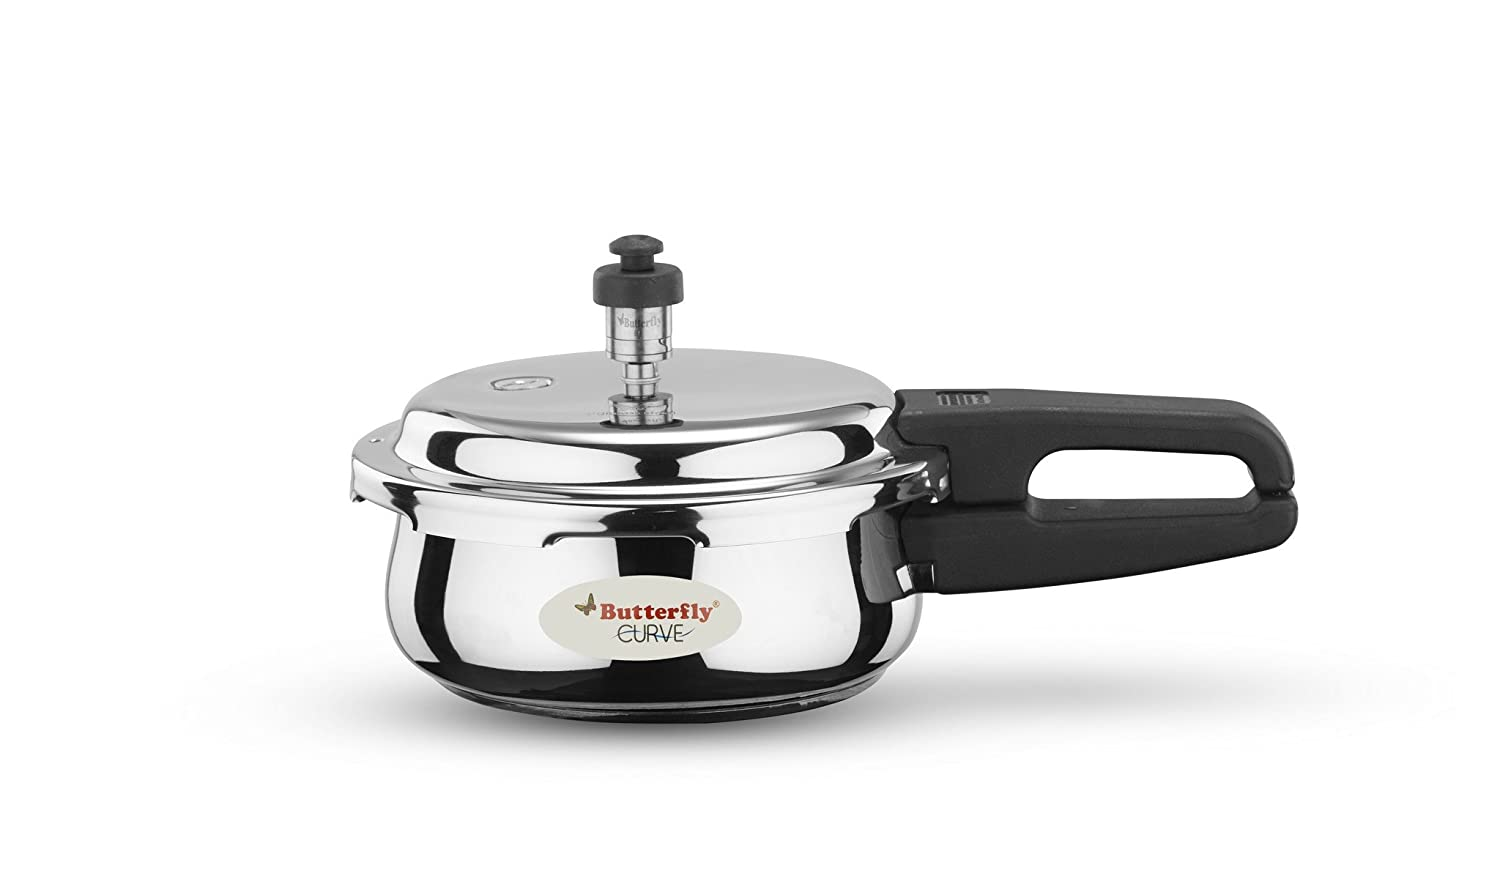 Buy Butterfly Curve Stainless Steel Pressure Cooker 2 Litre Online Induction Circuit Boardelectric Cookerinduction At Low Prices In India